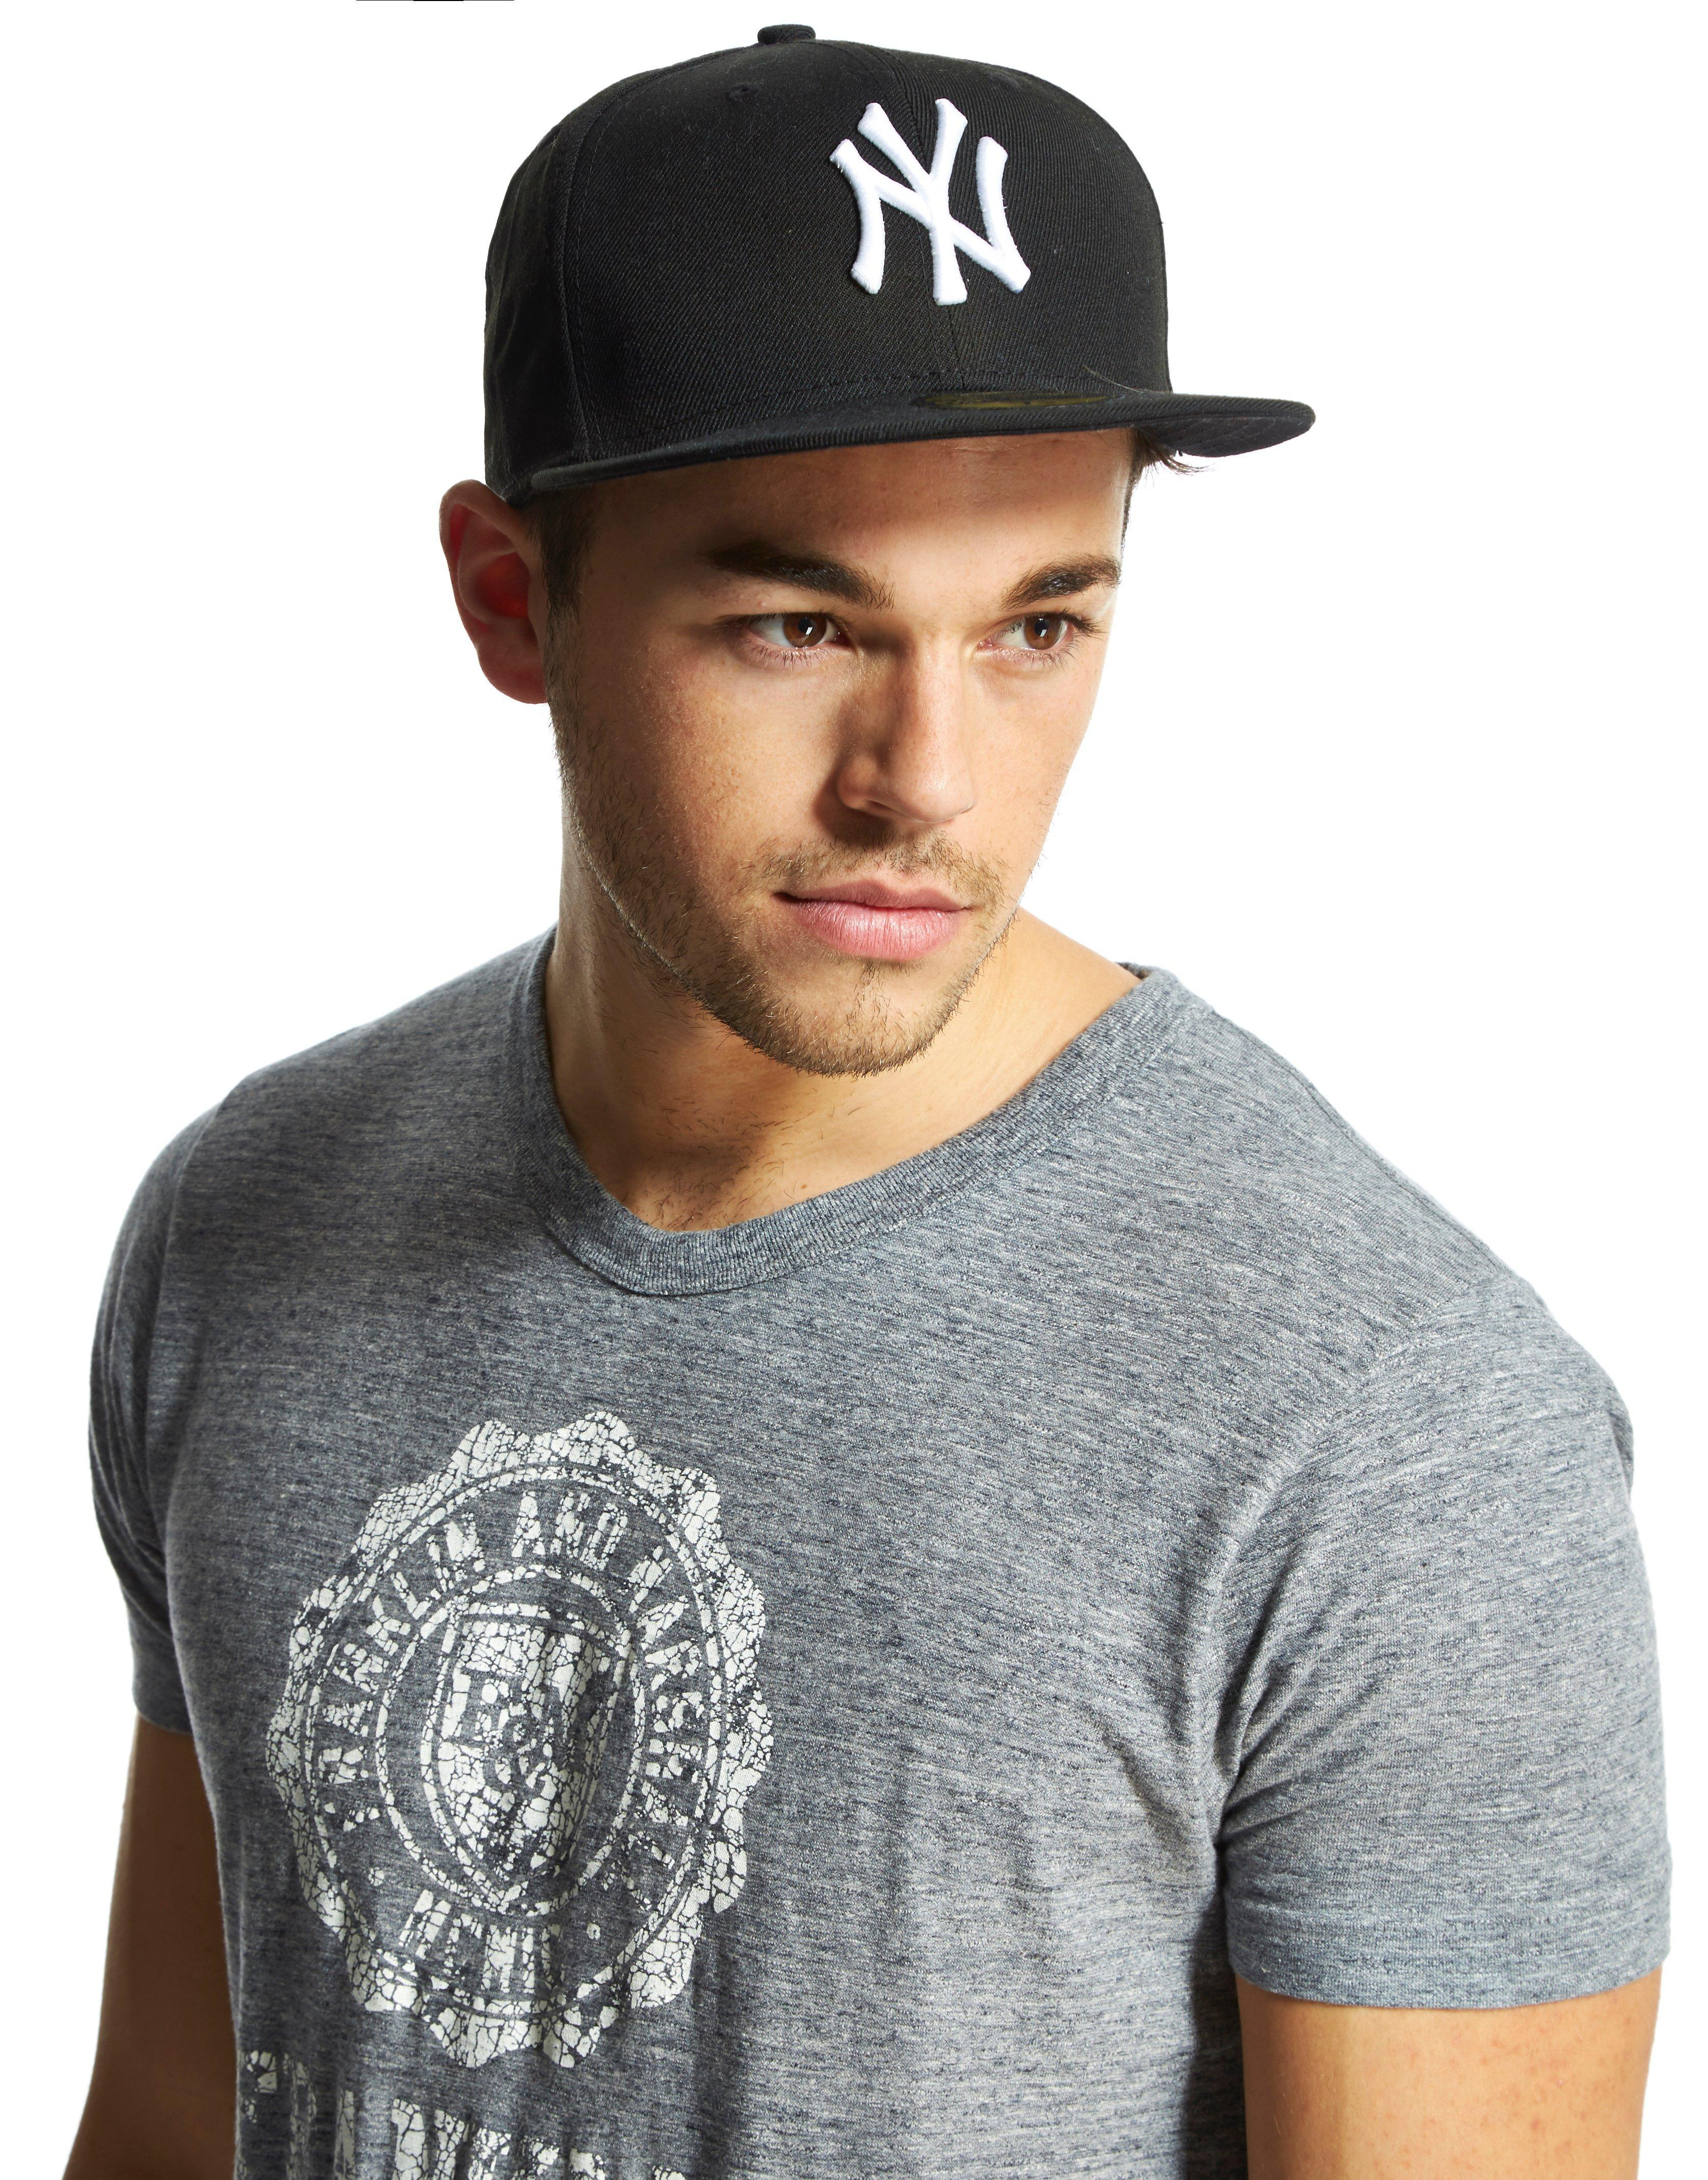 3e0b07a4fee Lyst - KTZ Mlb New York Yankees 59fifty Fitted Cap in Black for Men